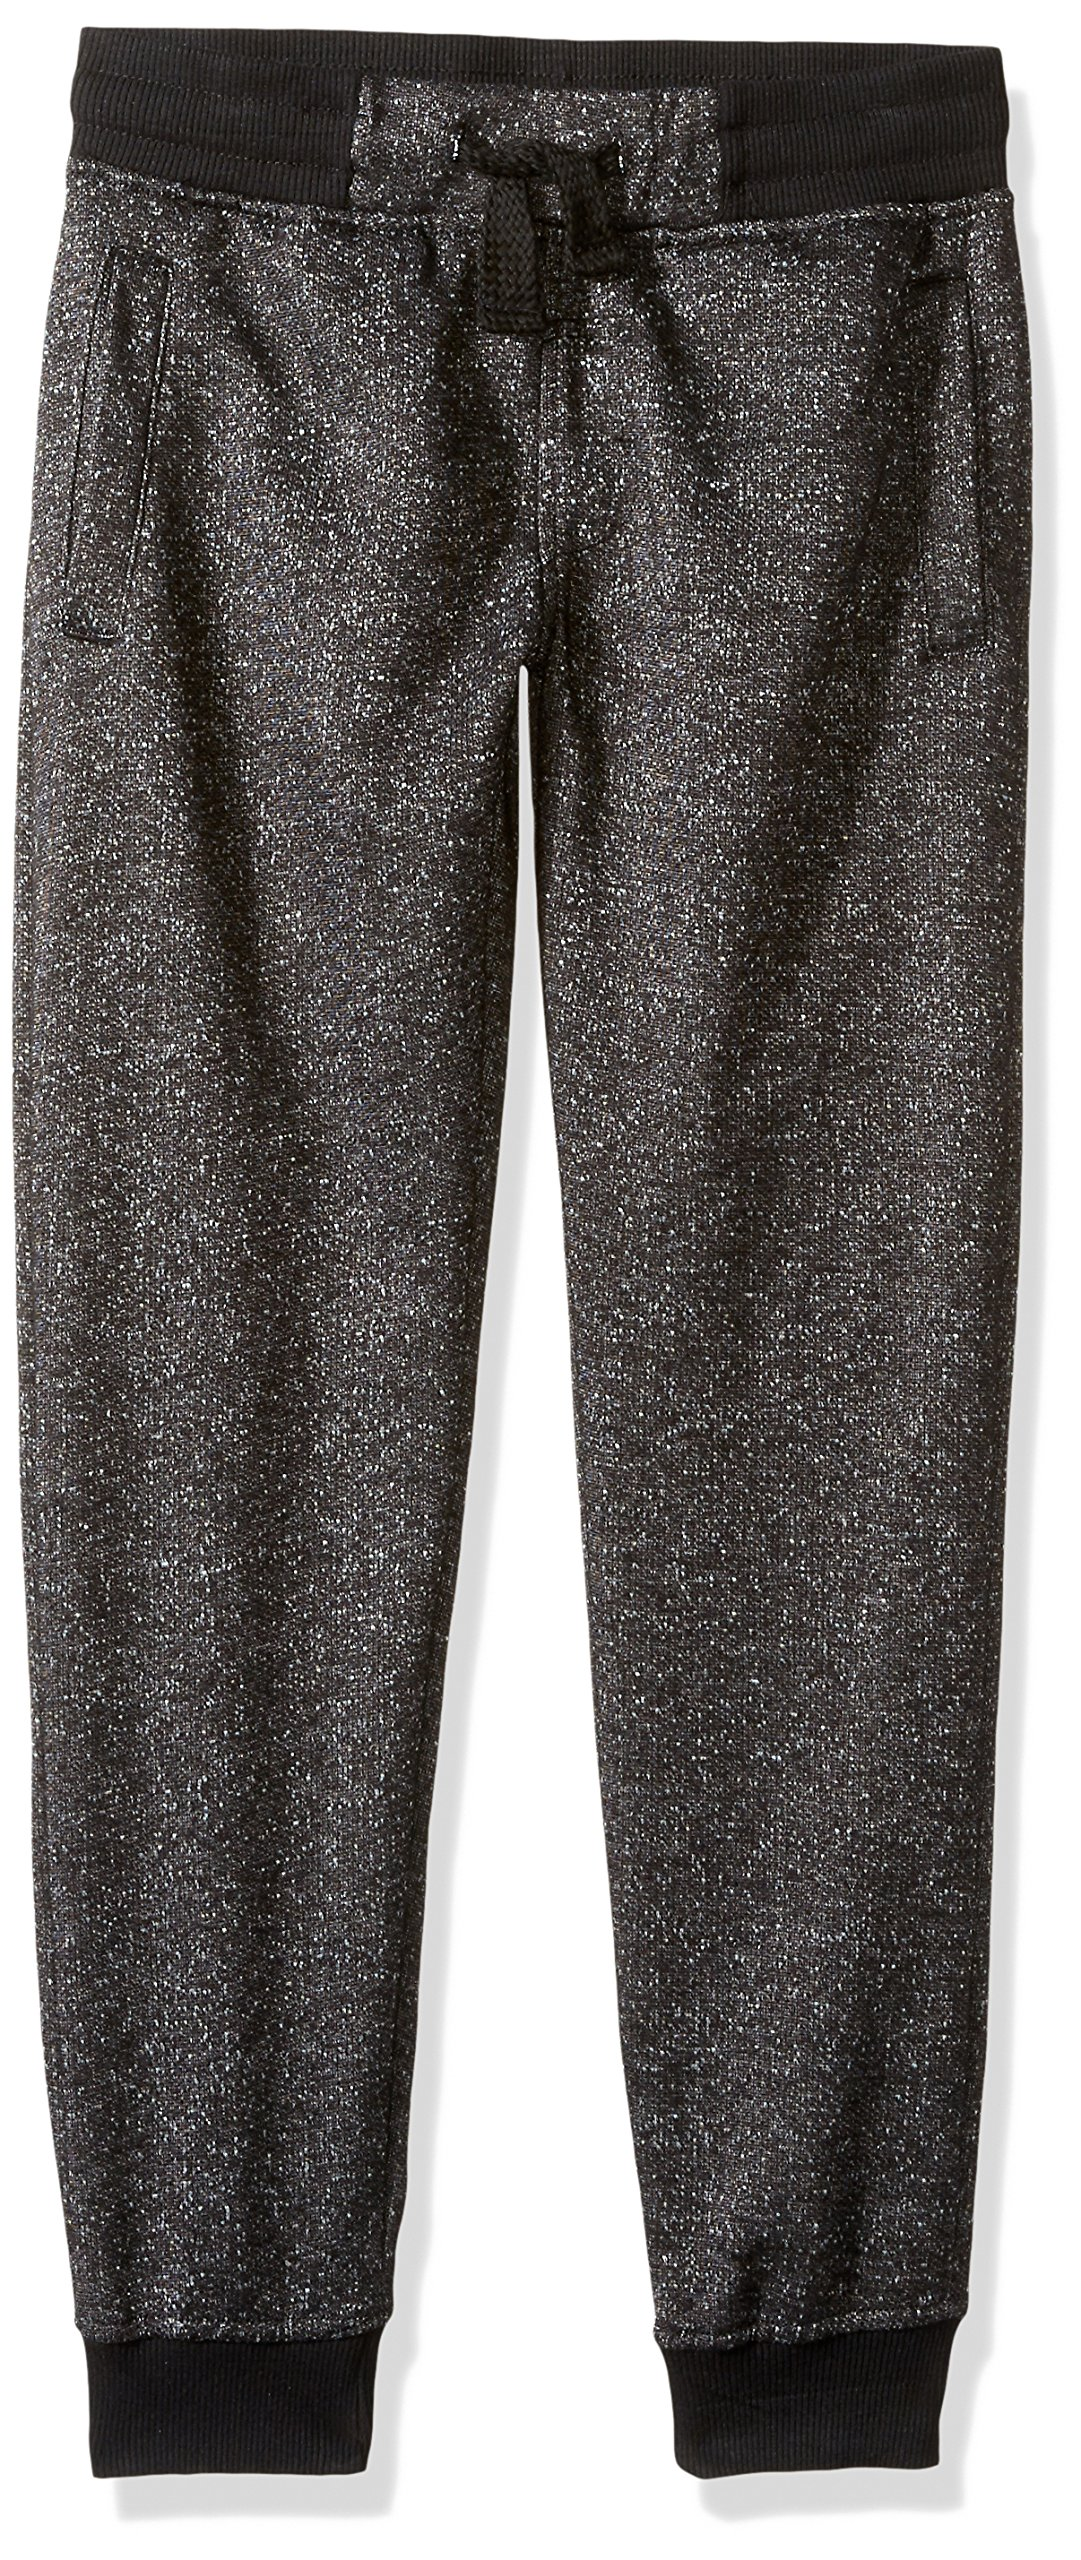 Southpole Big Boys' Jogger Pants in French Terry Basic Marled, Marled Black, Small